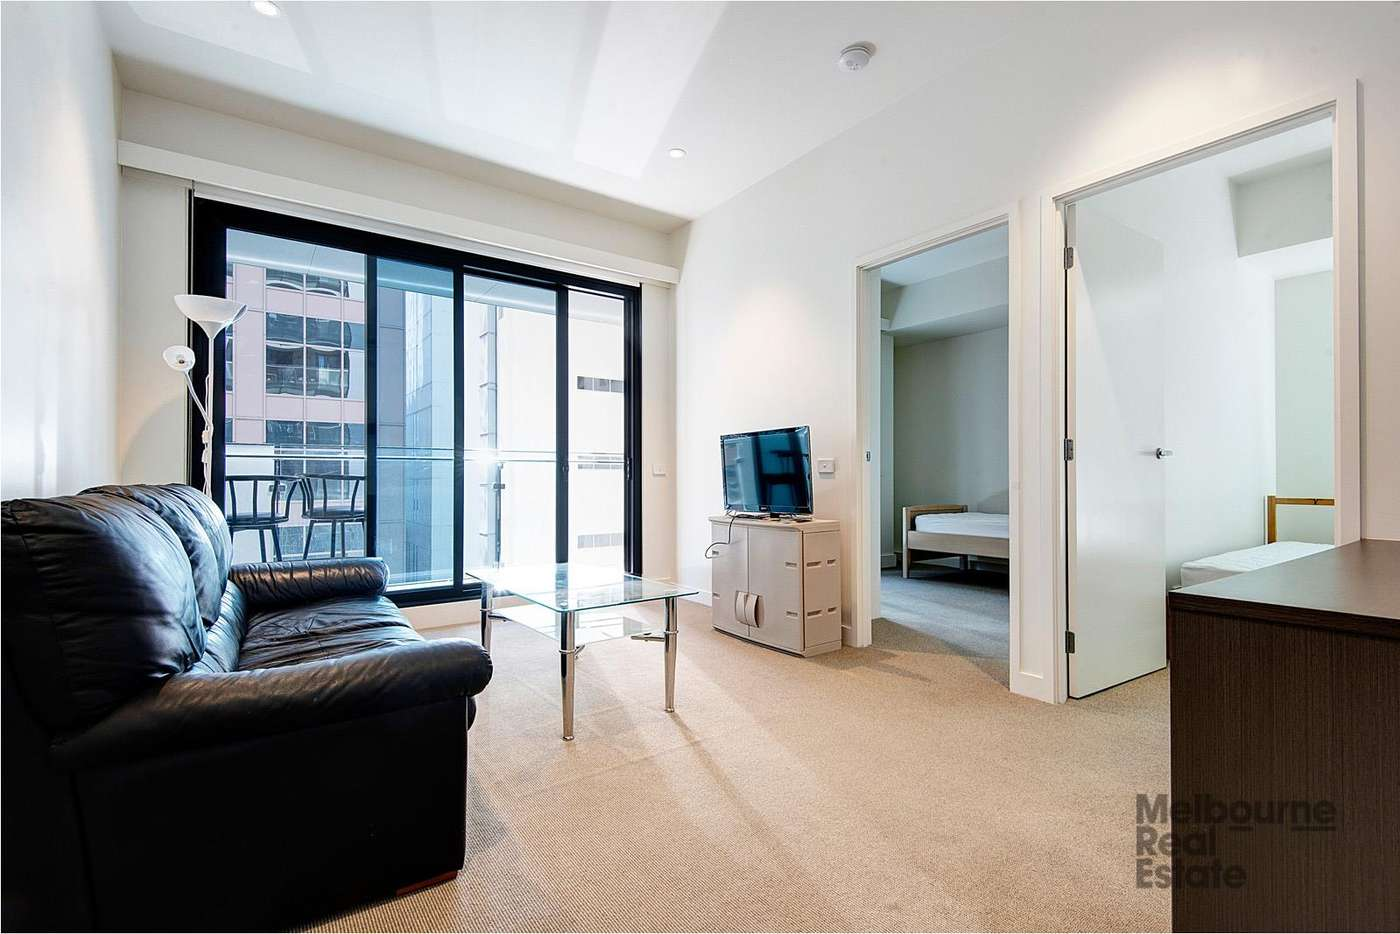 Main view of Homely apartment listing, 714/199 William Street, Melbourne VIC 3000